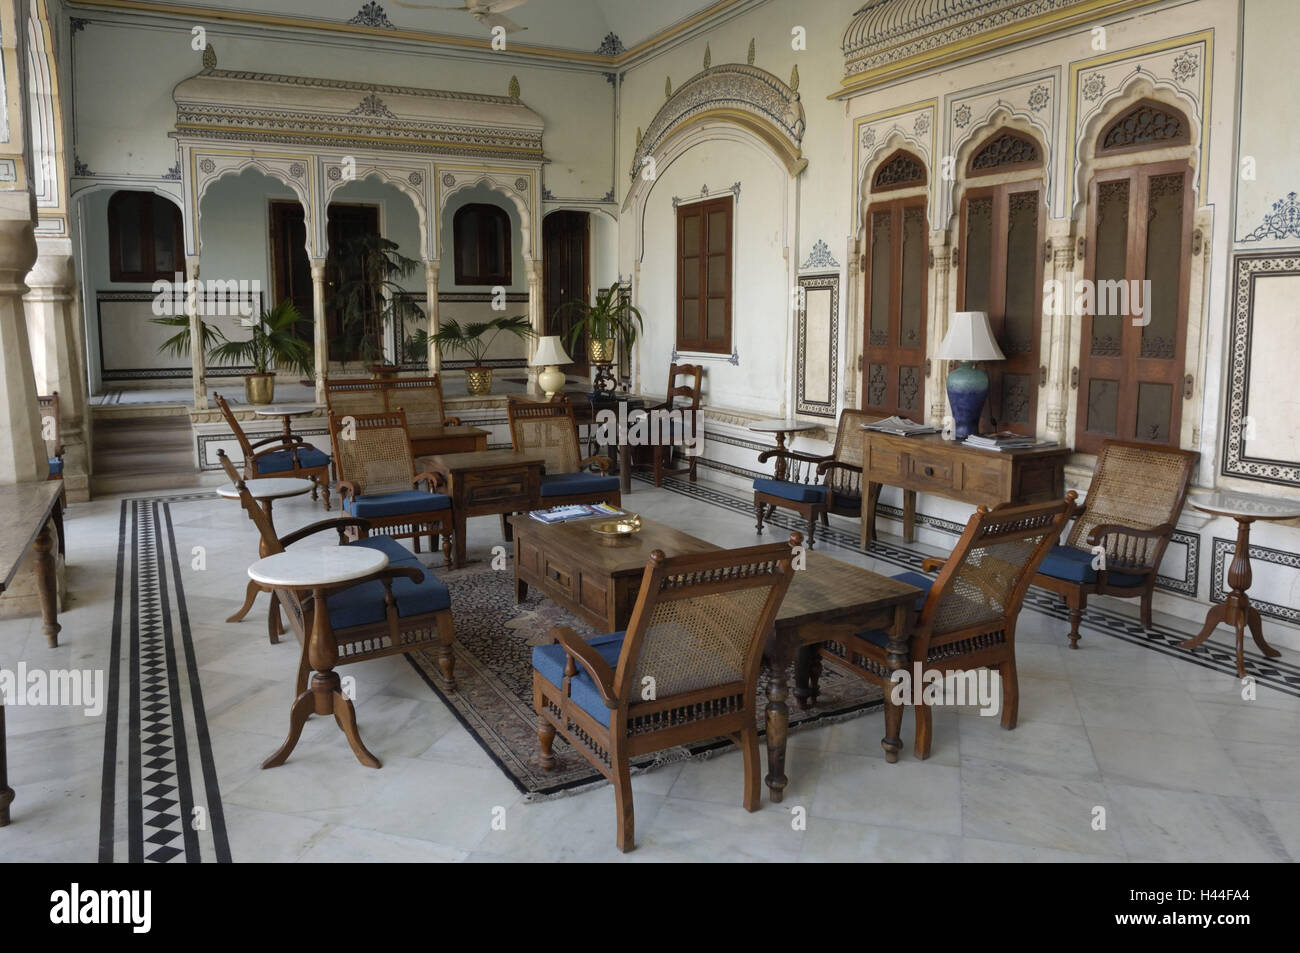 India, Rajasthan, Jaipur, architecture, lobby, seat groups, - Stock Image